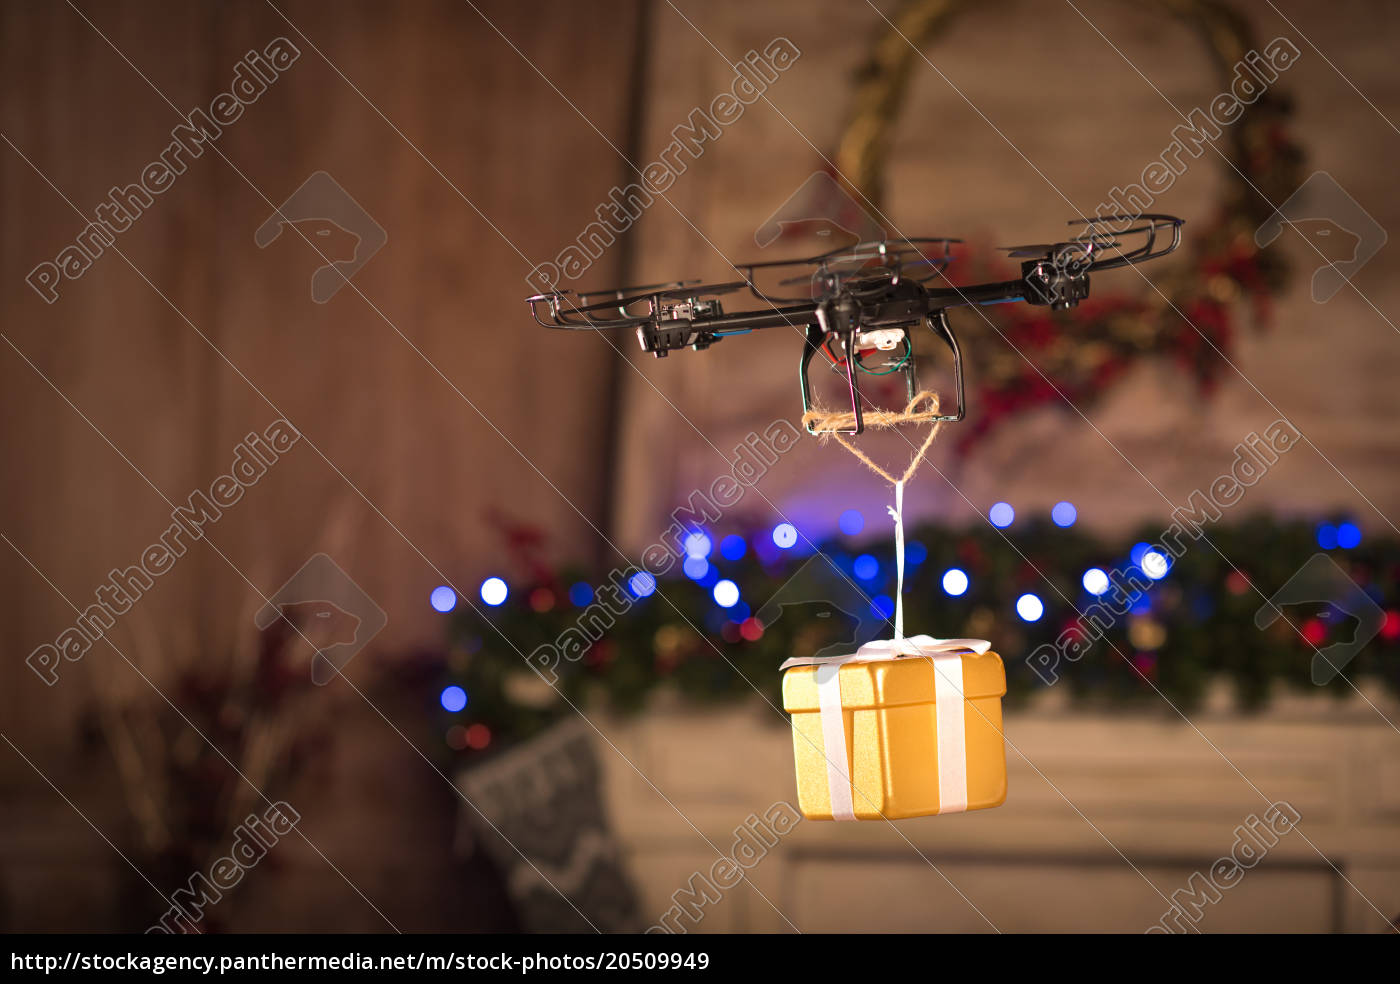 hexacopter, drone, flying, with, gift, box - 20509949